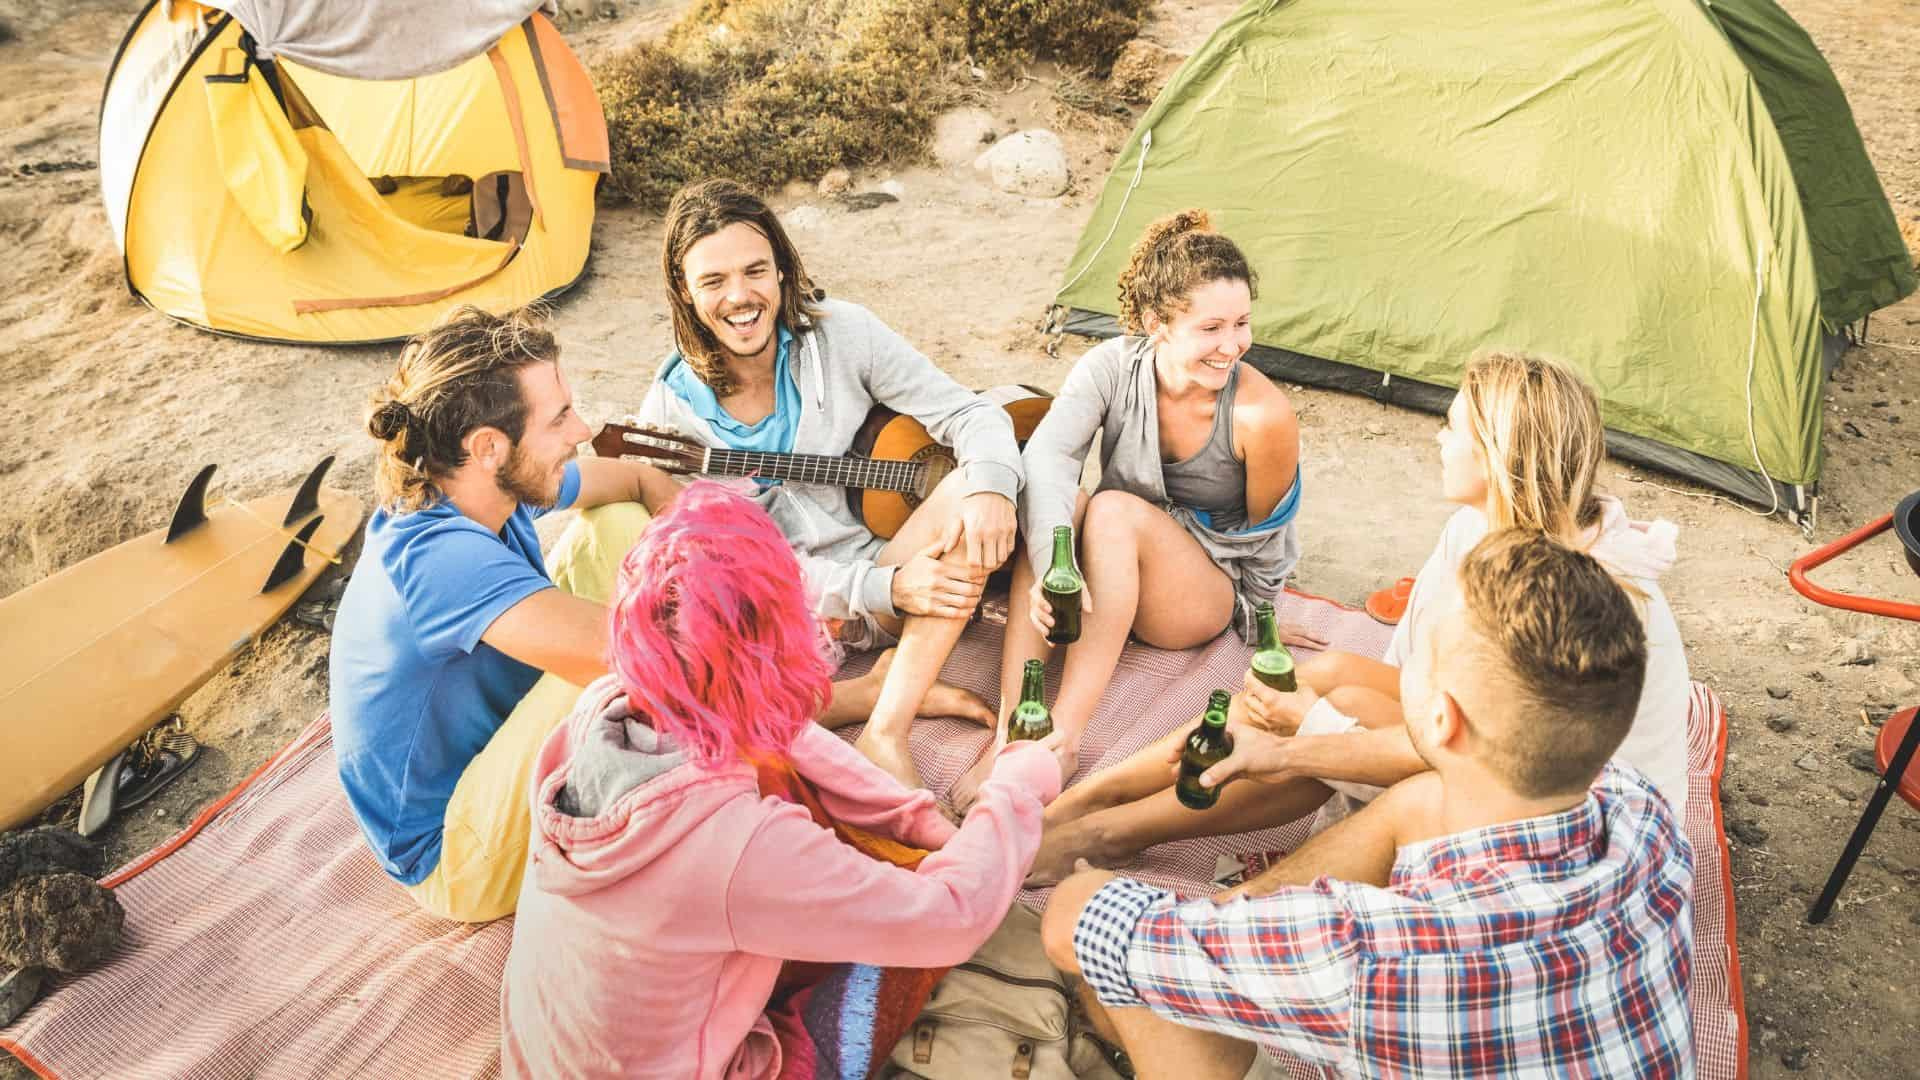 5 Reasons to Try Beach Camping with Your Family